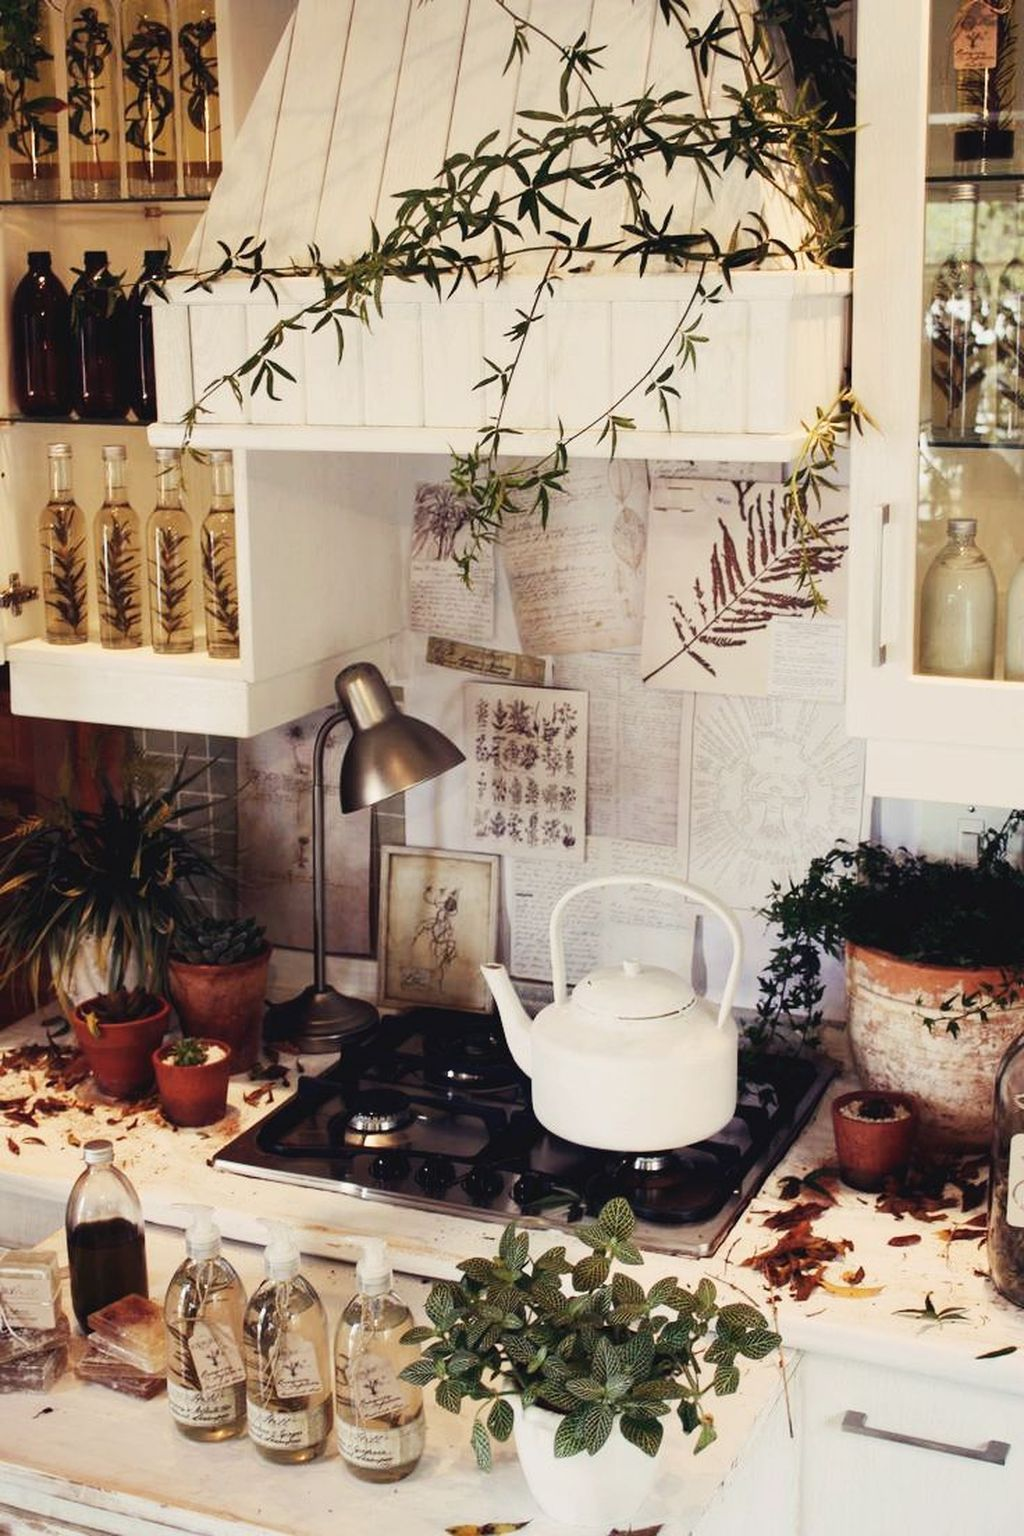 40 Witchy Home Decoration Fill Your House With Things You Adore The Best Thing About It S That There Isn T An Bohemian Kitchen Bohemian Style Kitchen Decor